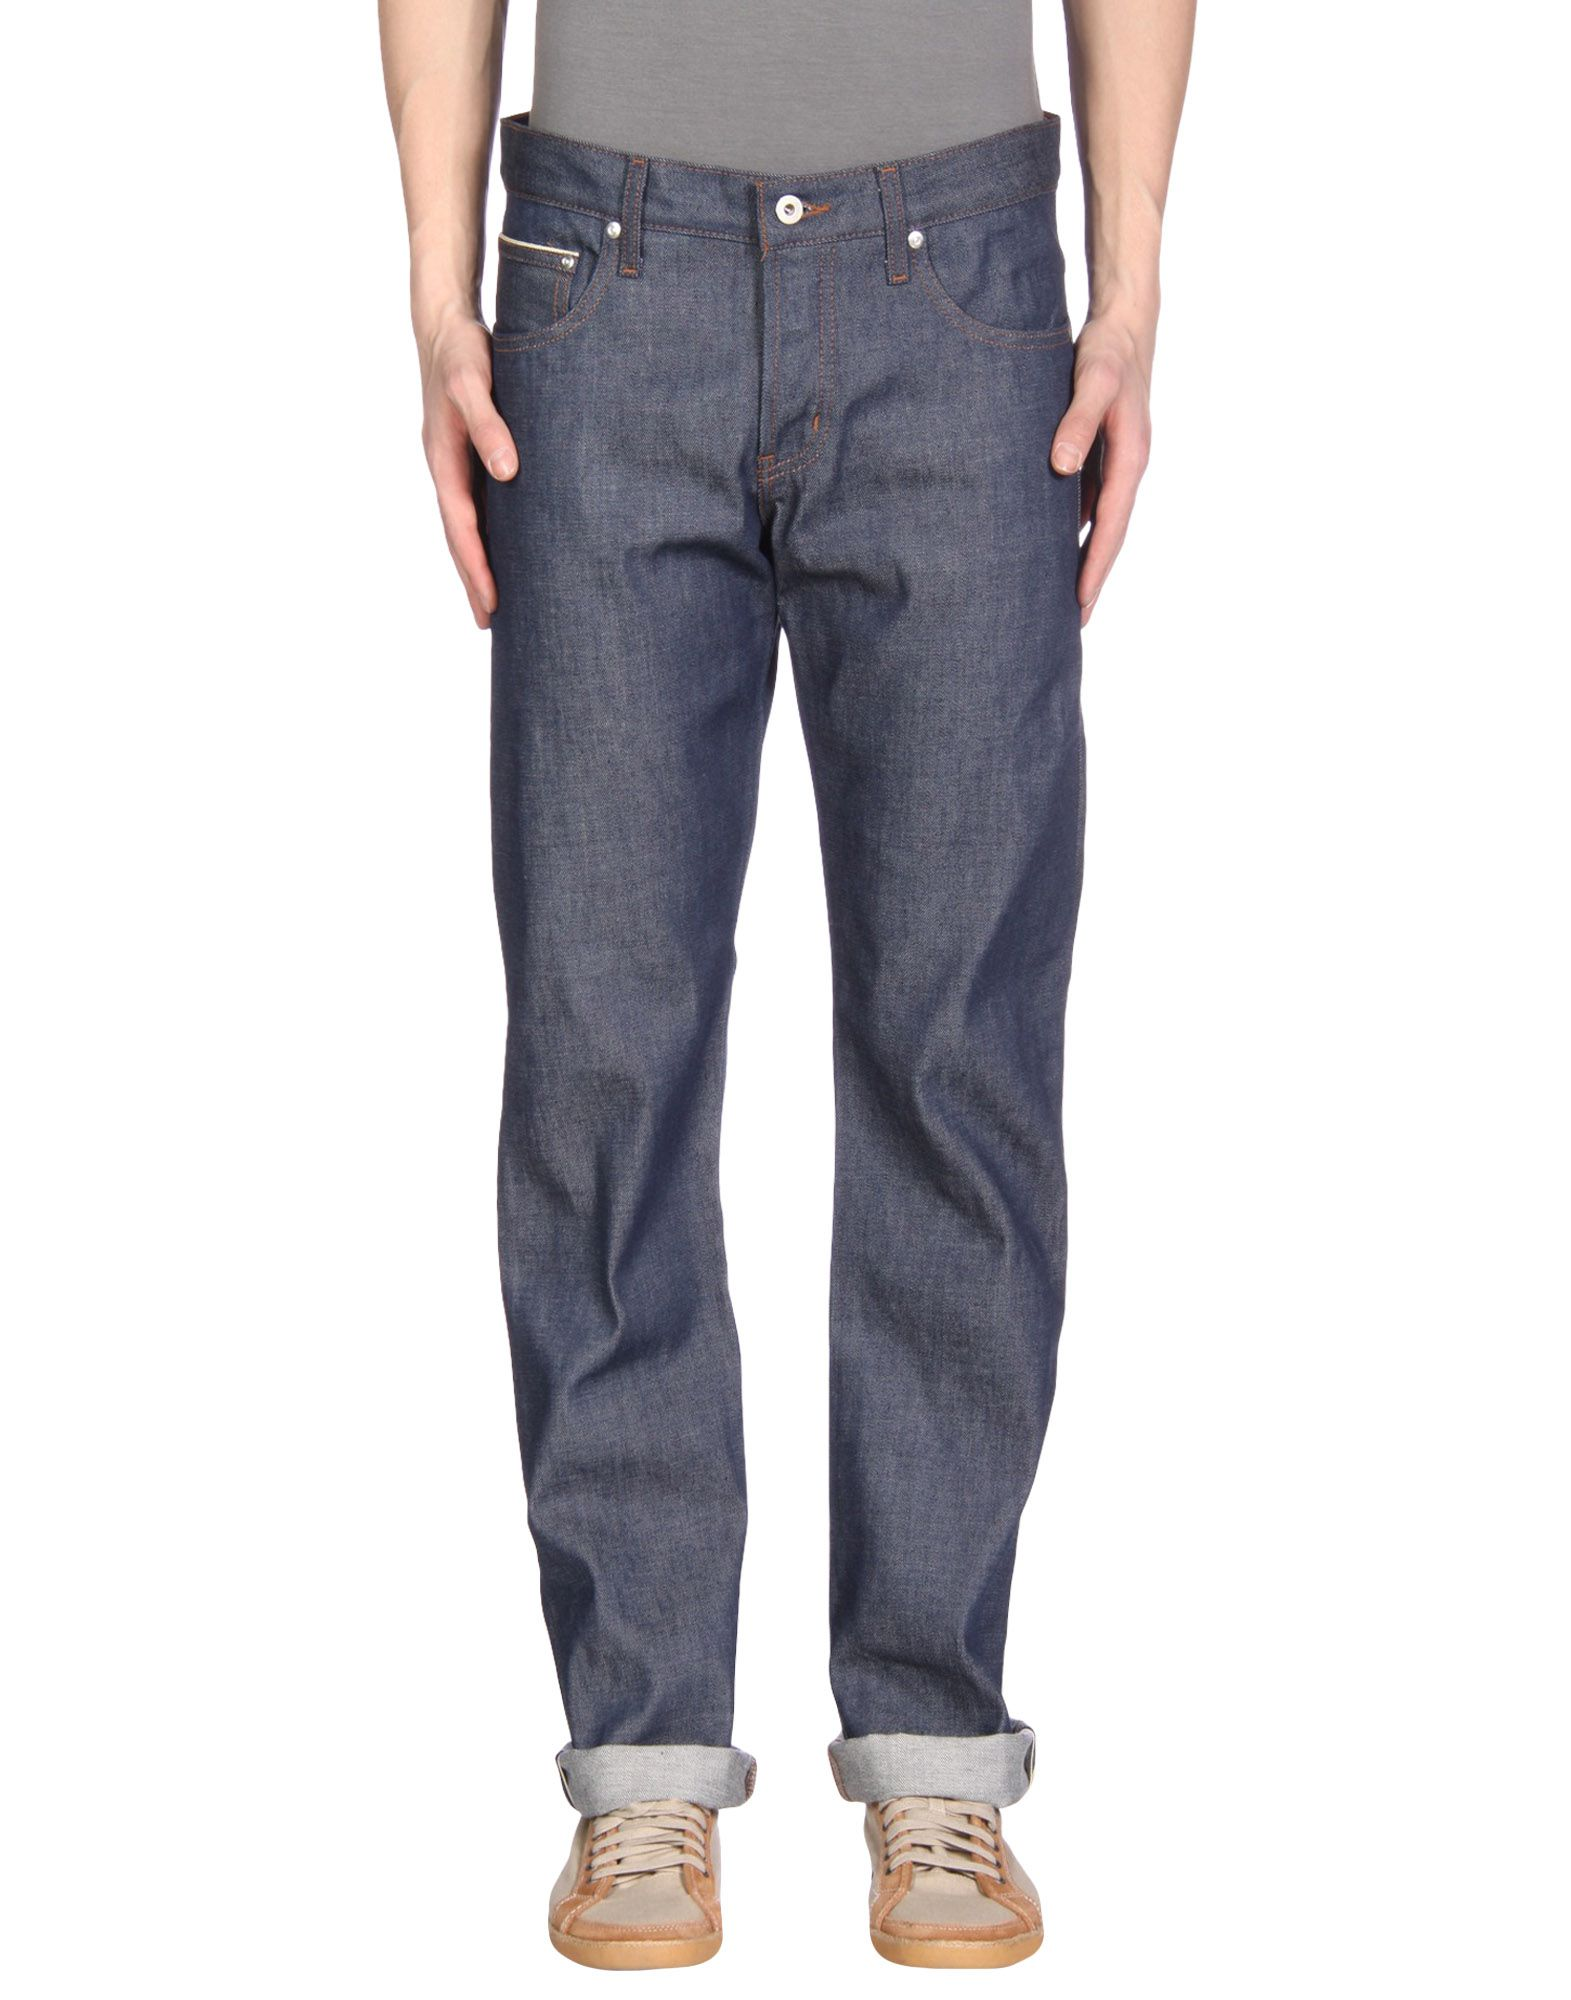 NAKED & FAMOUS Denim Pants in Blue